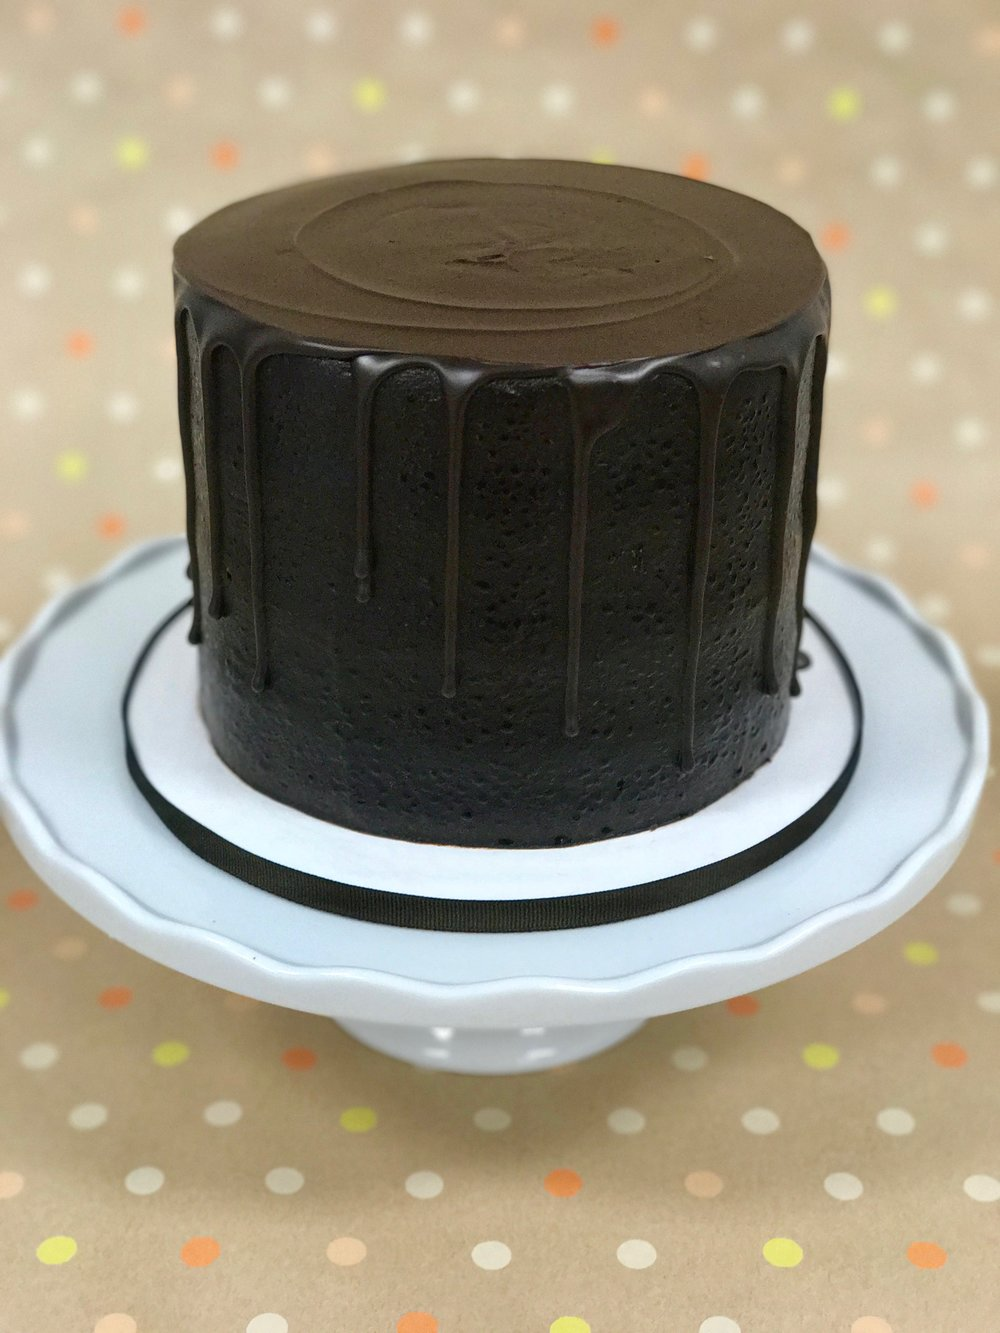 Chocolate Lovers - Cake: ChocolateFilling: Chocolate FudgeFrosting: Chocolate Fudge and dark chocolate ganache